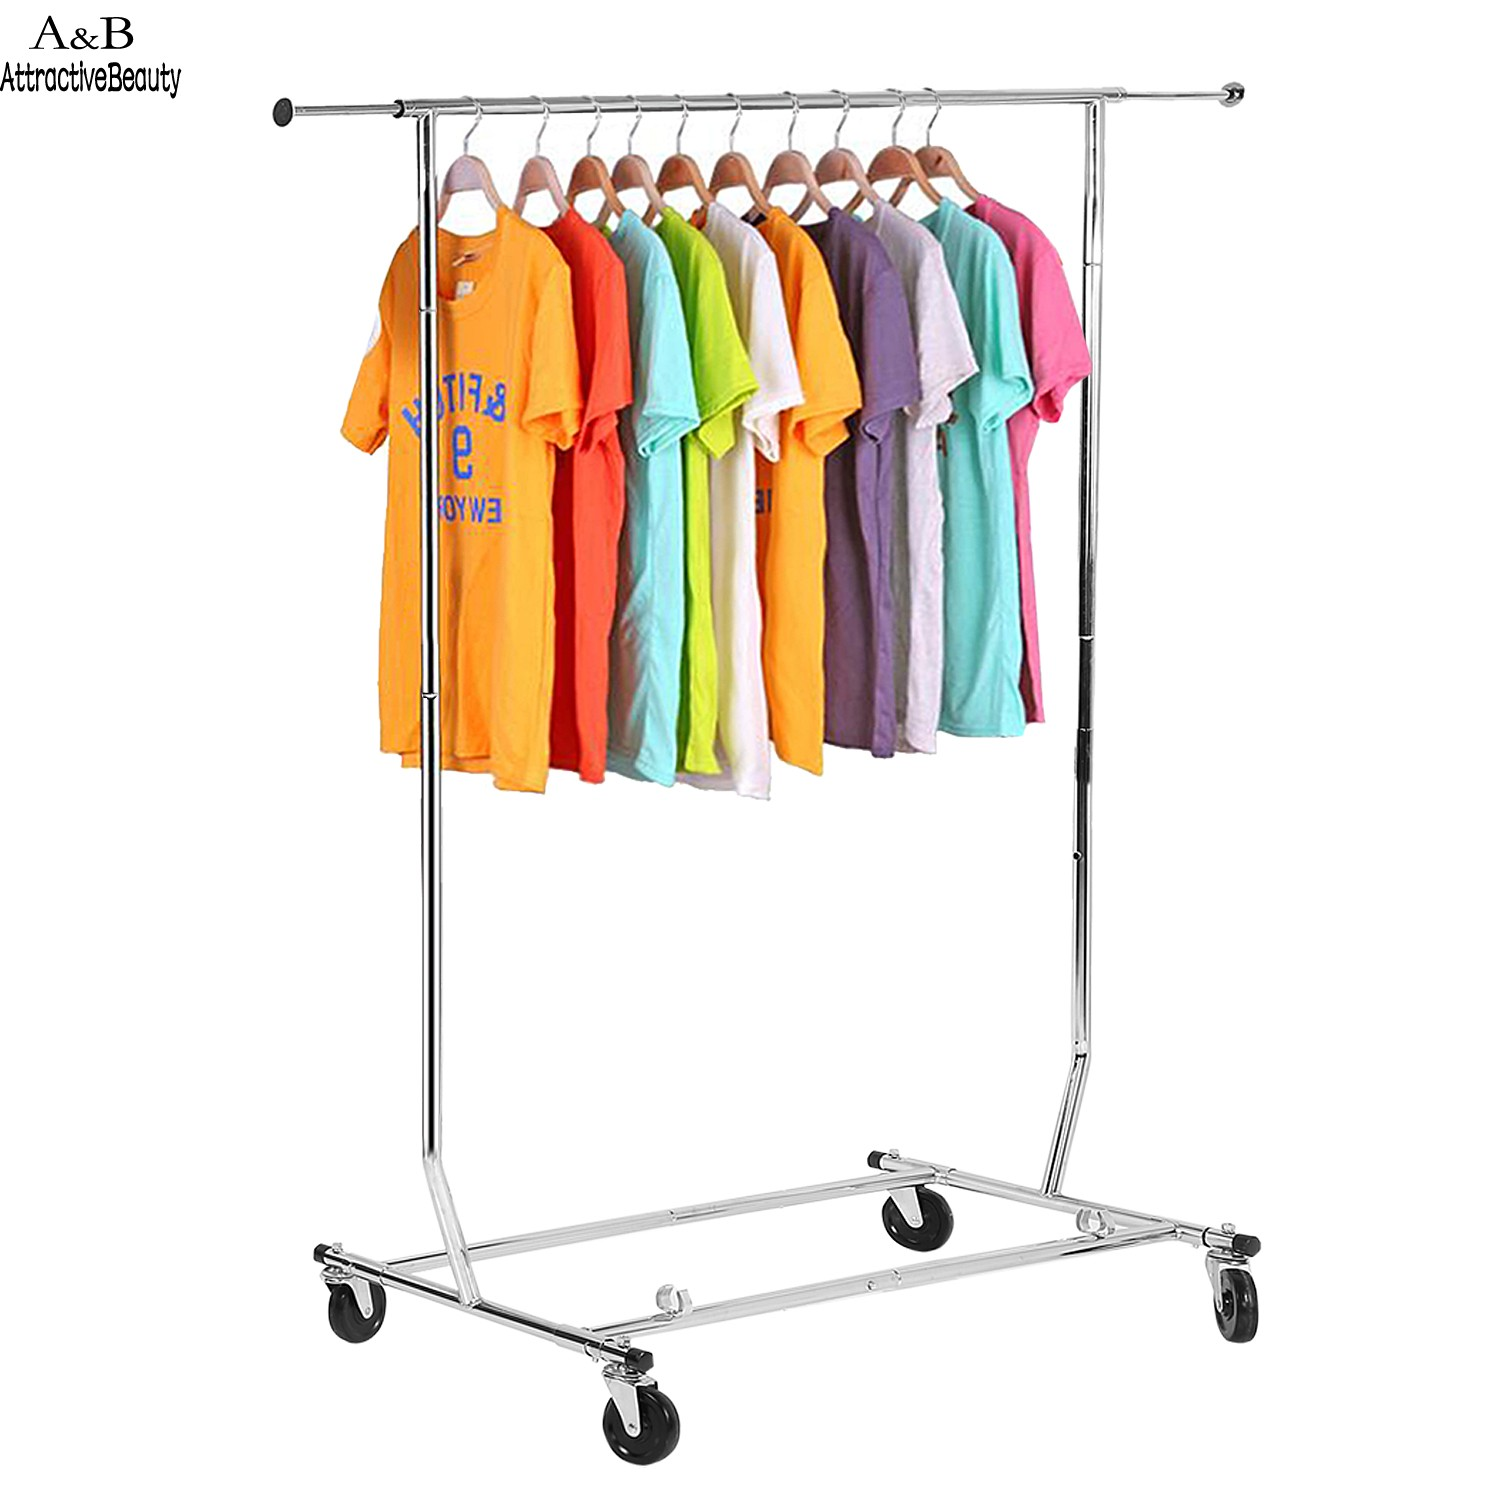 homdox adjustable rolling steel clothes hanger organizer garment rack heavy duty rail with wheel n20 - Metal Clothes Rack